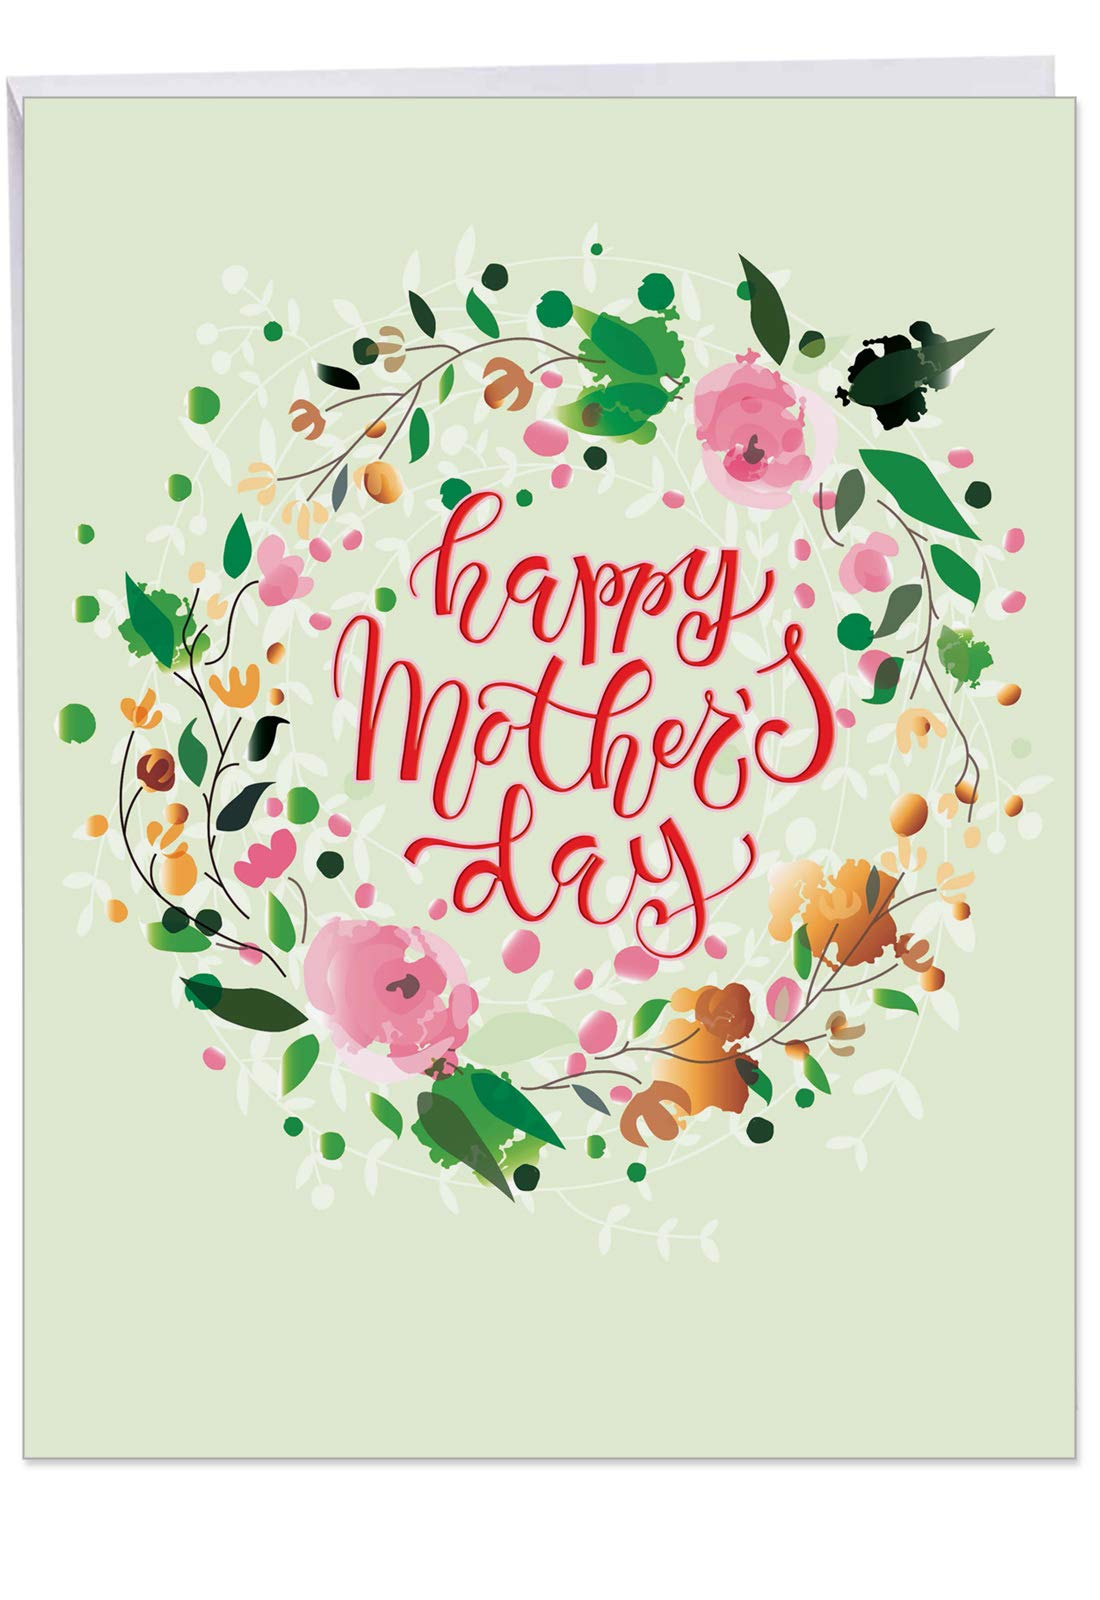 Watercolor Mother's Day - Colorful Happy Mothers Day Card with Envelope (Extra Large 8.5 x 11 Inch) - Painted Flower Wreath Greeting Card for Mom - Big Stationery Notecard J3484MDG